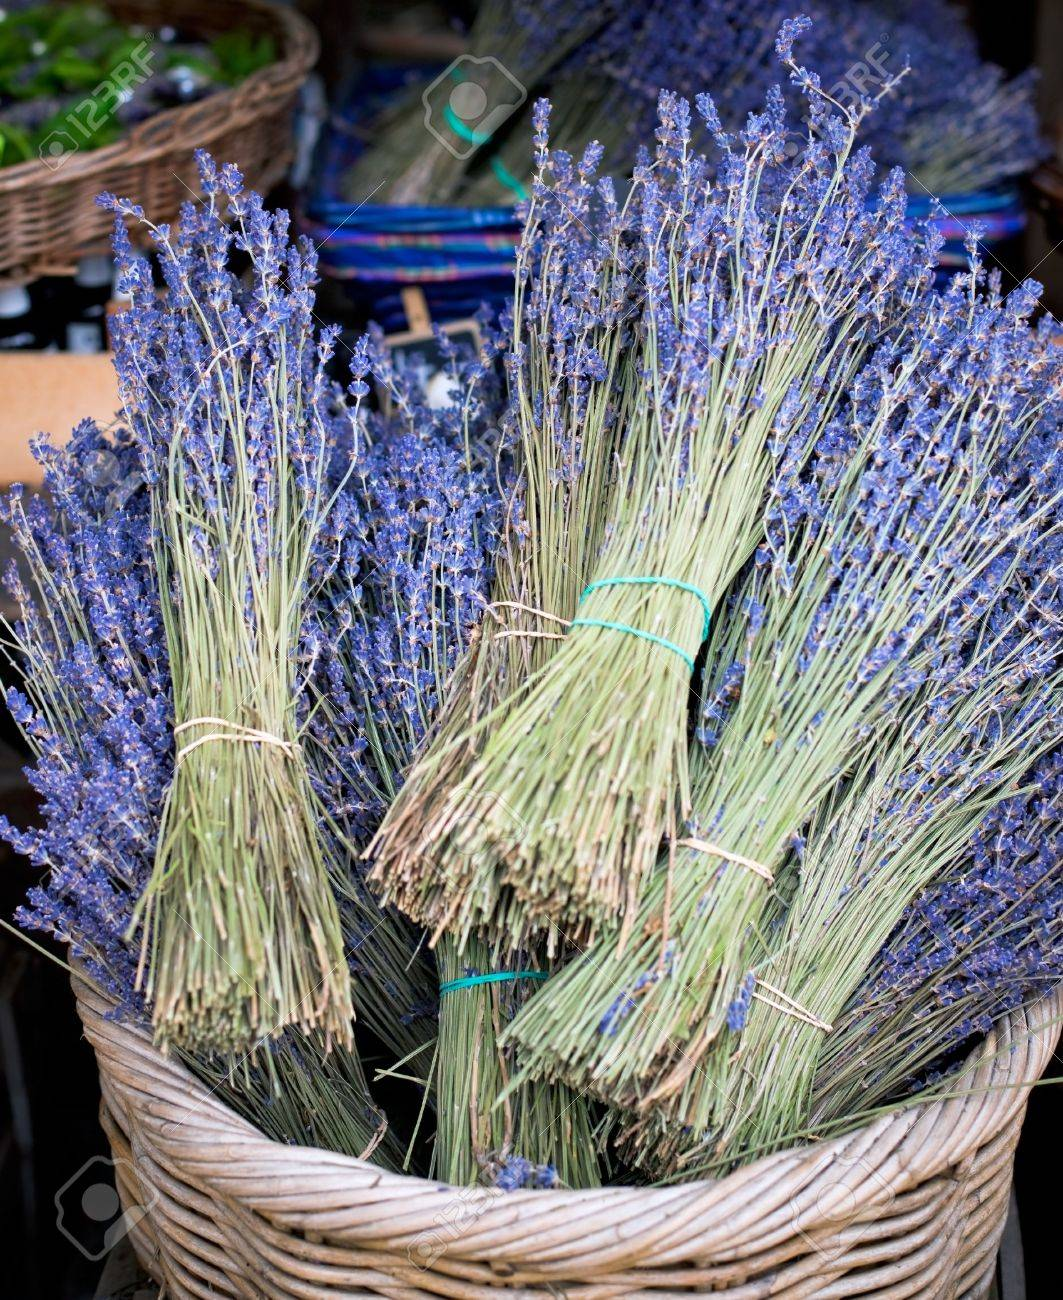 Dry Lavender Bunches in basket for Sale at street market Stock Photo - 7125398